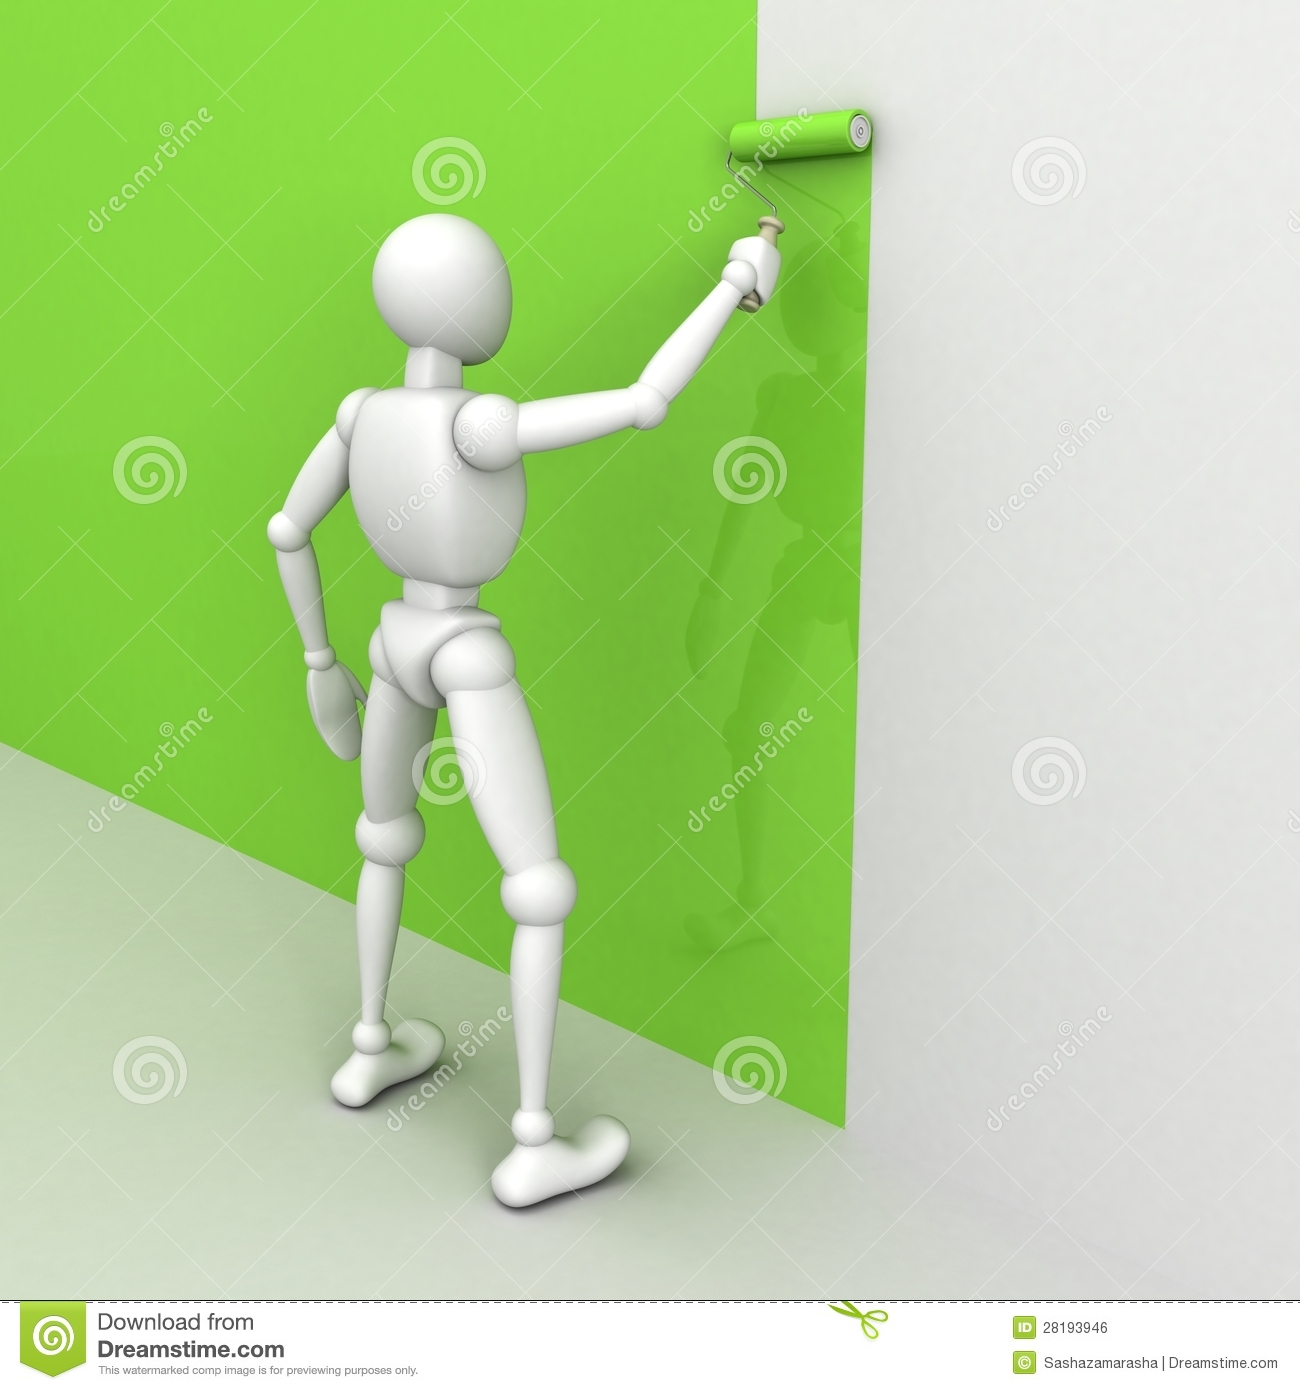 Person painting wall - 3d Man Painting The Wall With A Roller Brush Royalty Free Stock Image